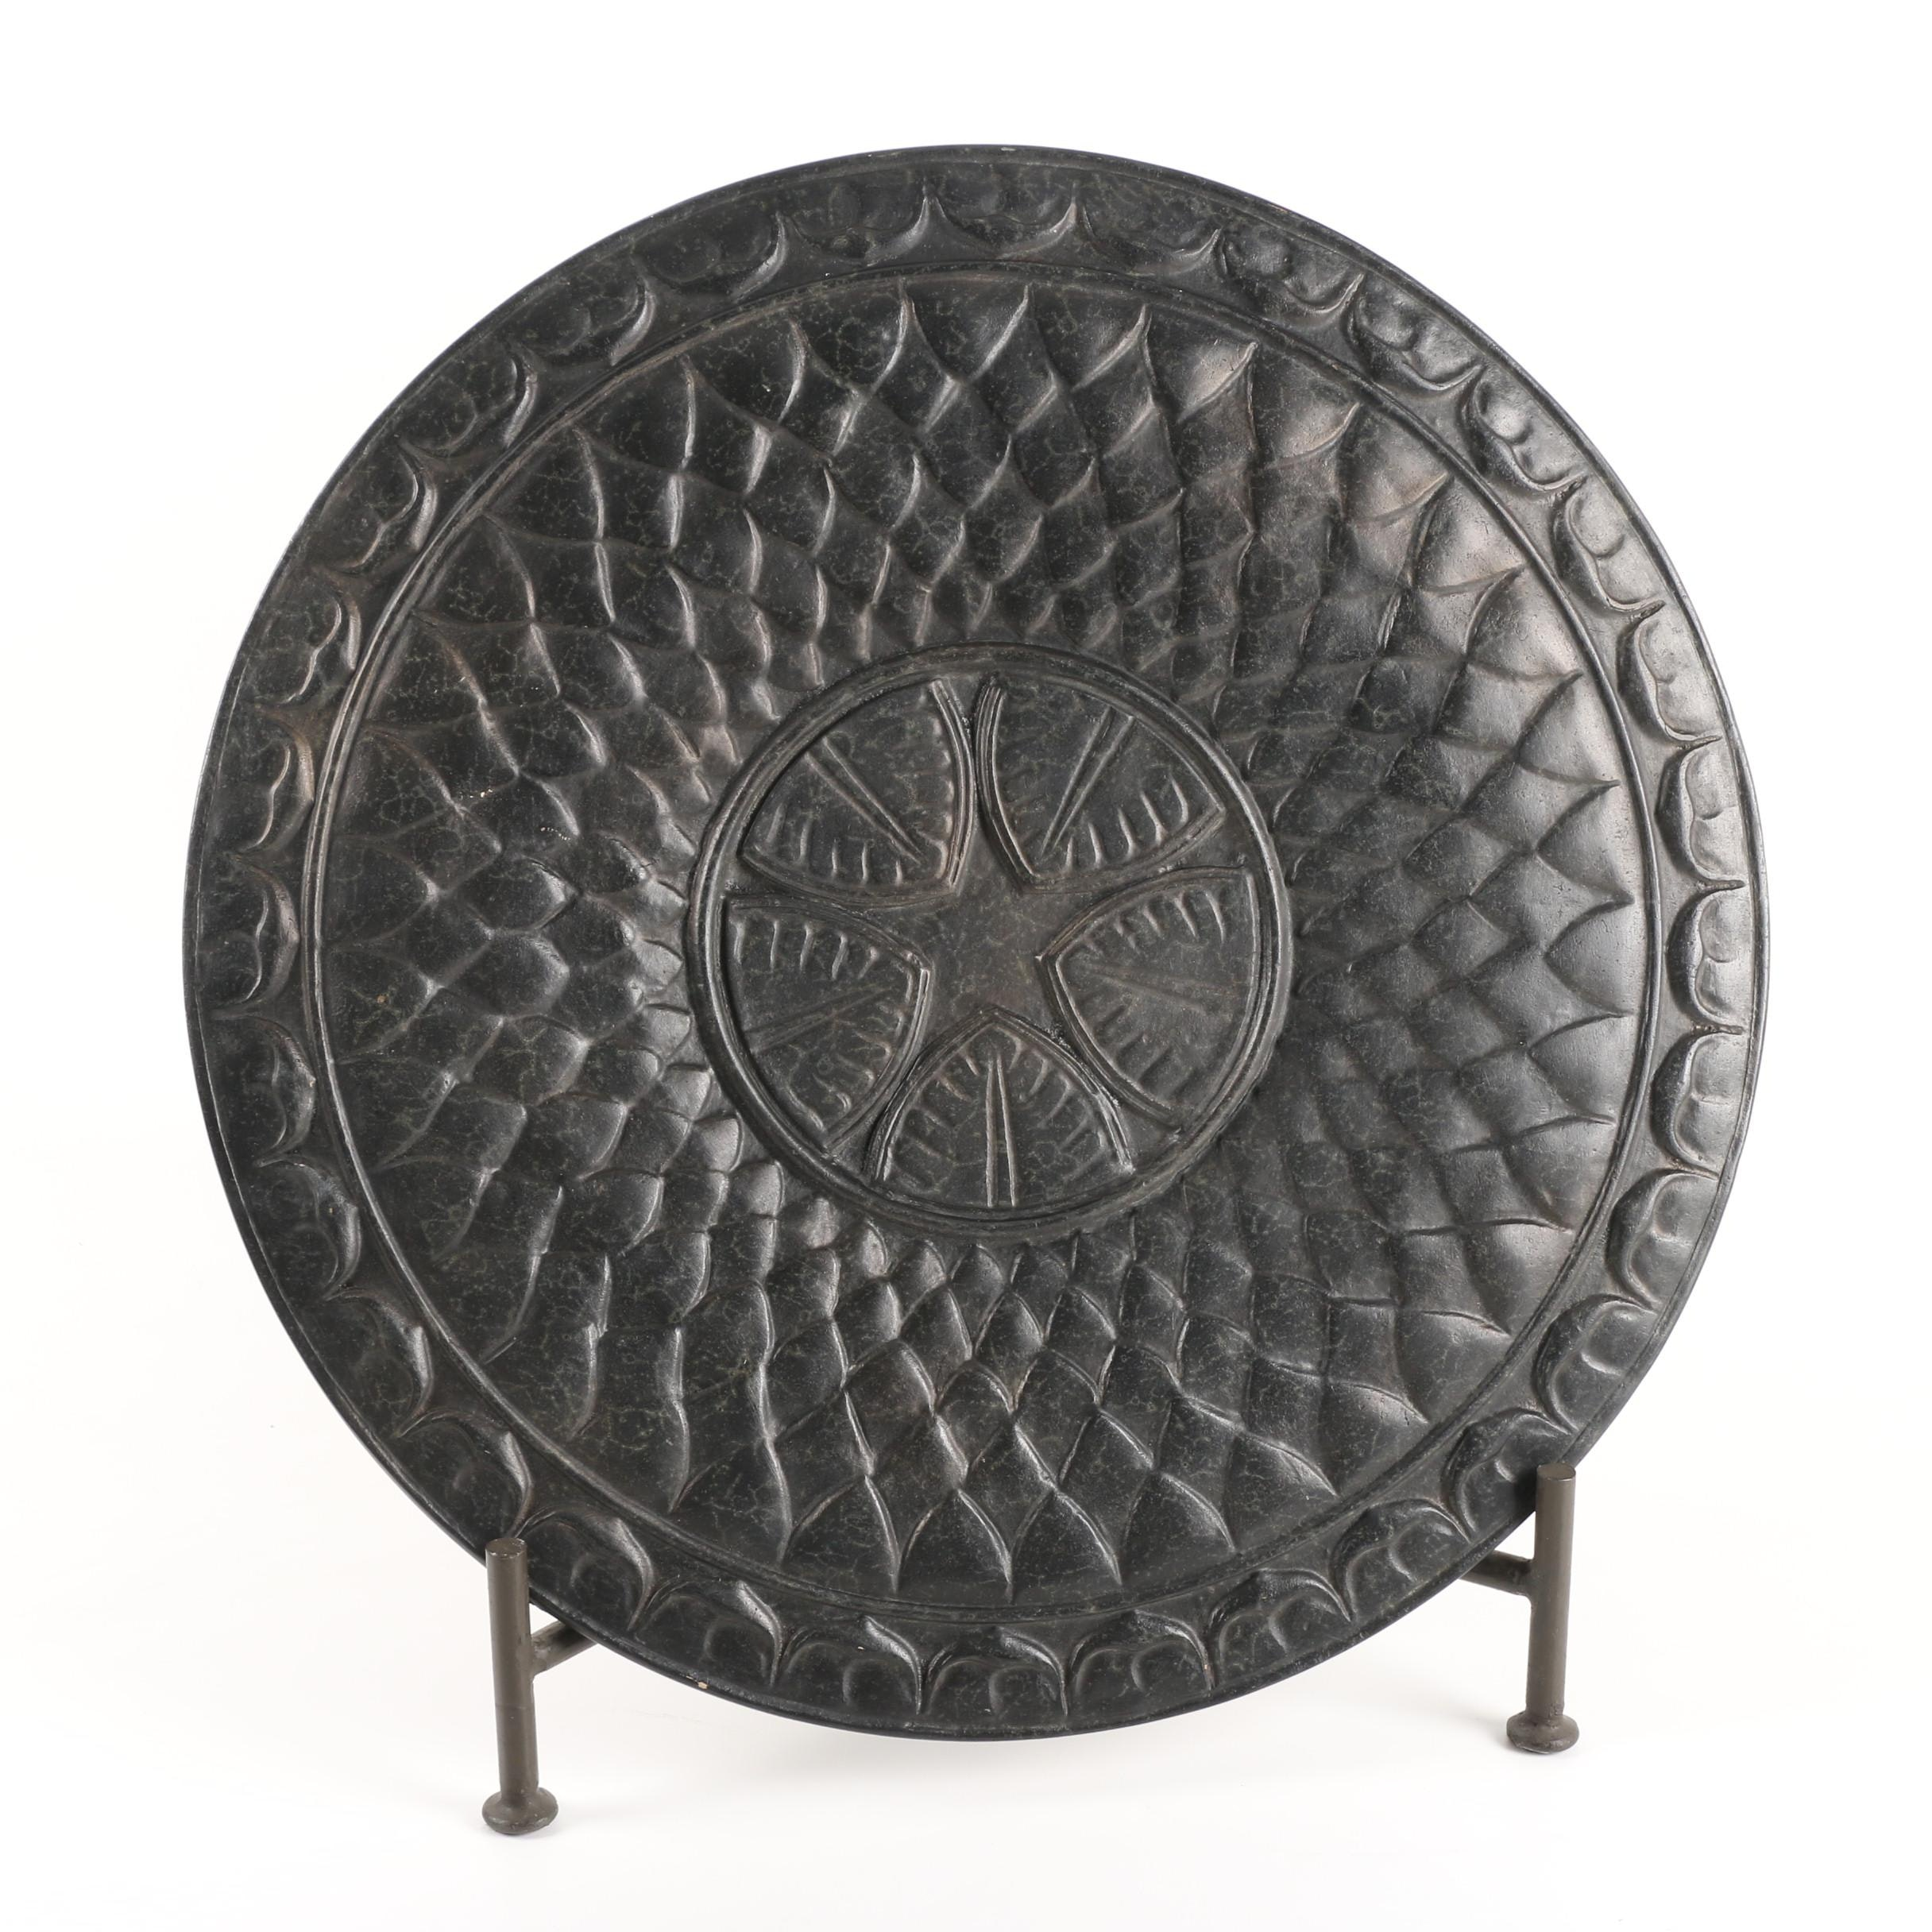 Decorative Ceramic Plate with Stand